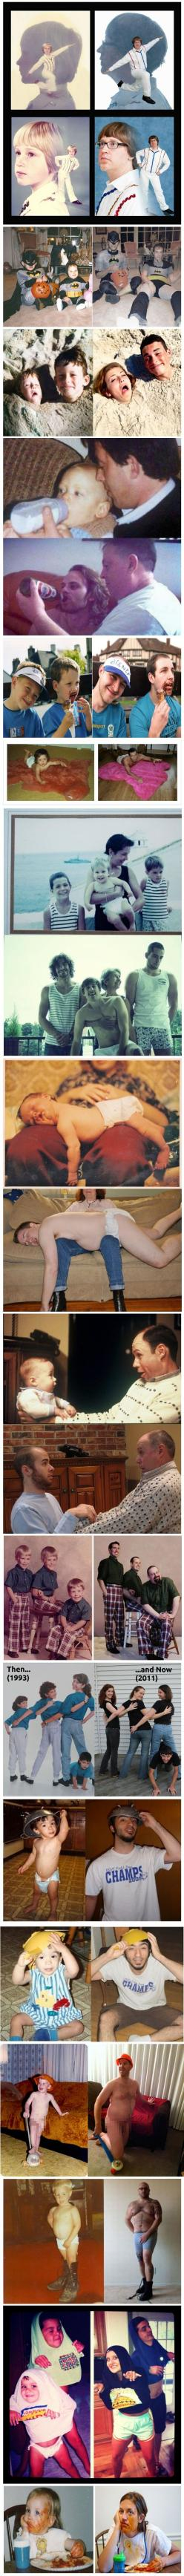 Family Photos Then and Now.  They always make me laugh harder than they probably should!: Idea, Giggle, Family Photos, Photo Recreation, Funny Stuff, Funnies, So Funny, Hilarious